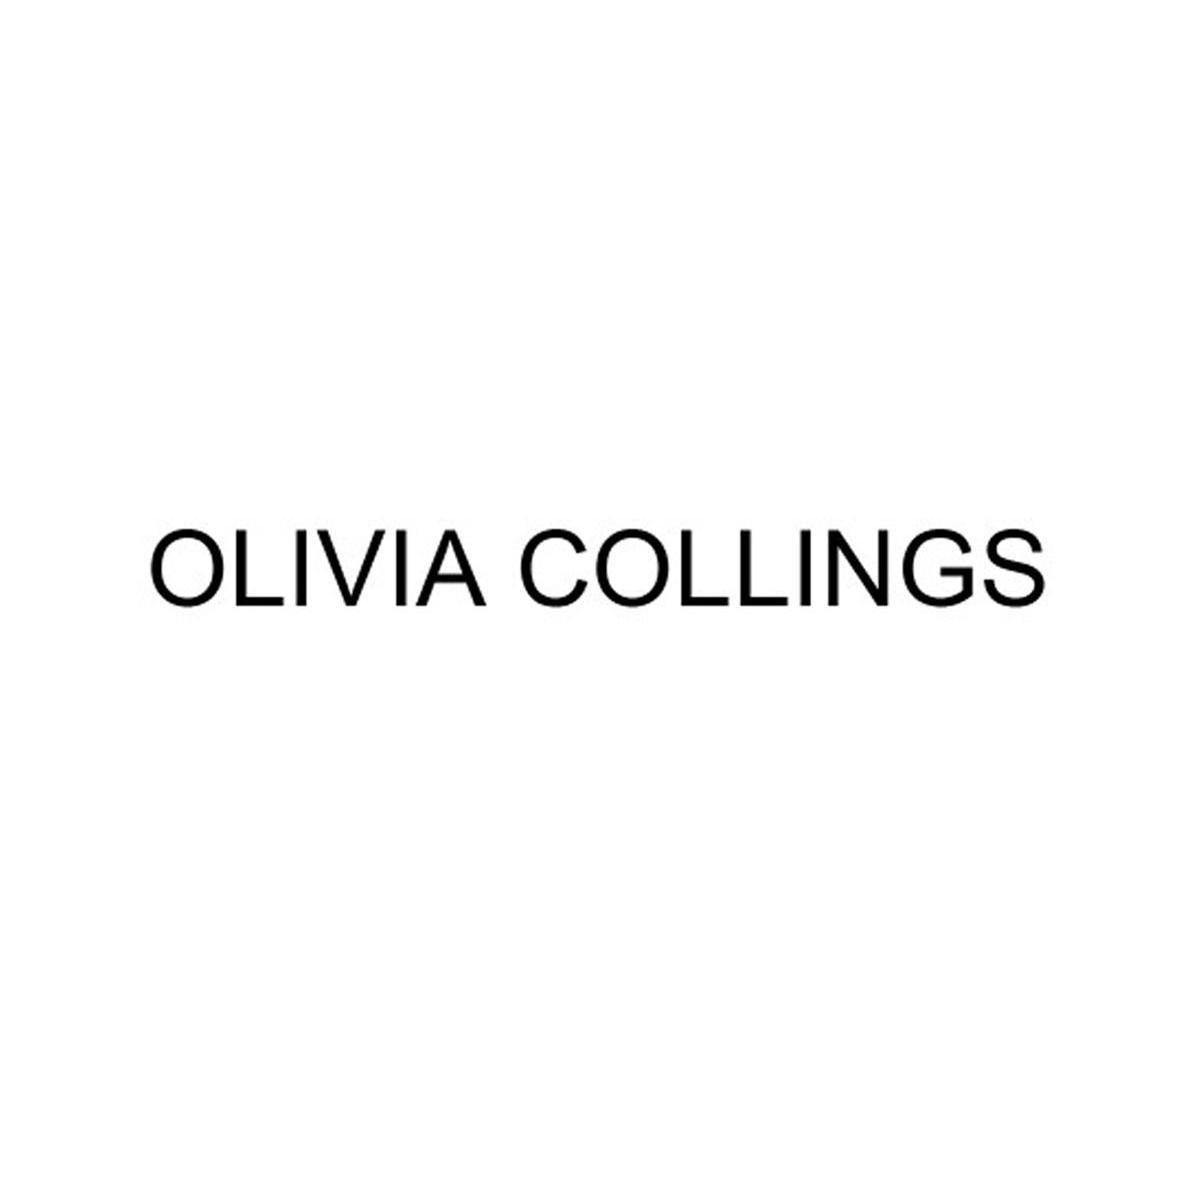 OLIVIACOLLINGS